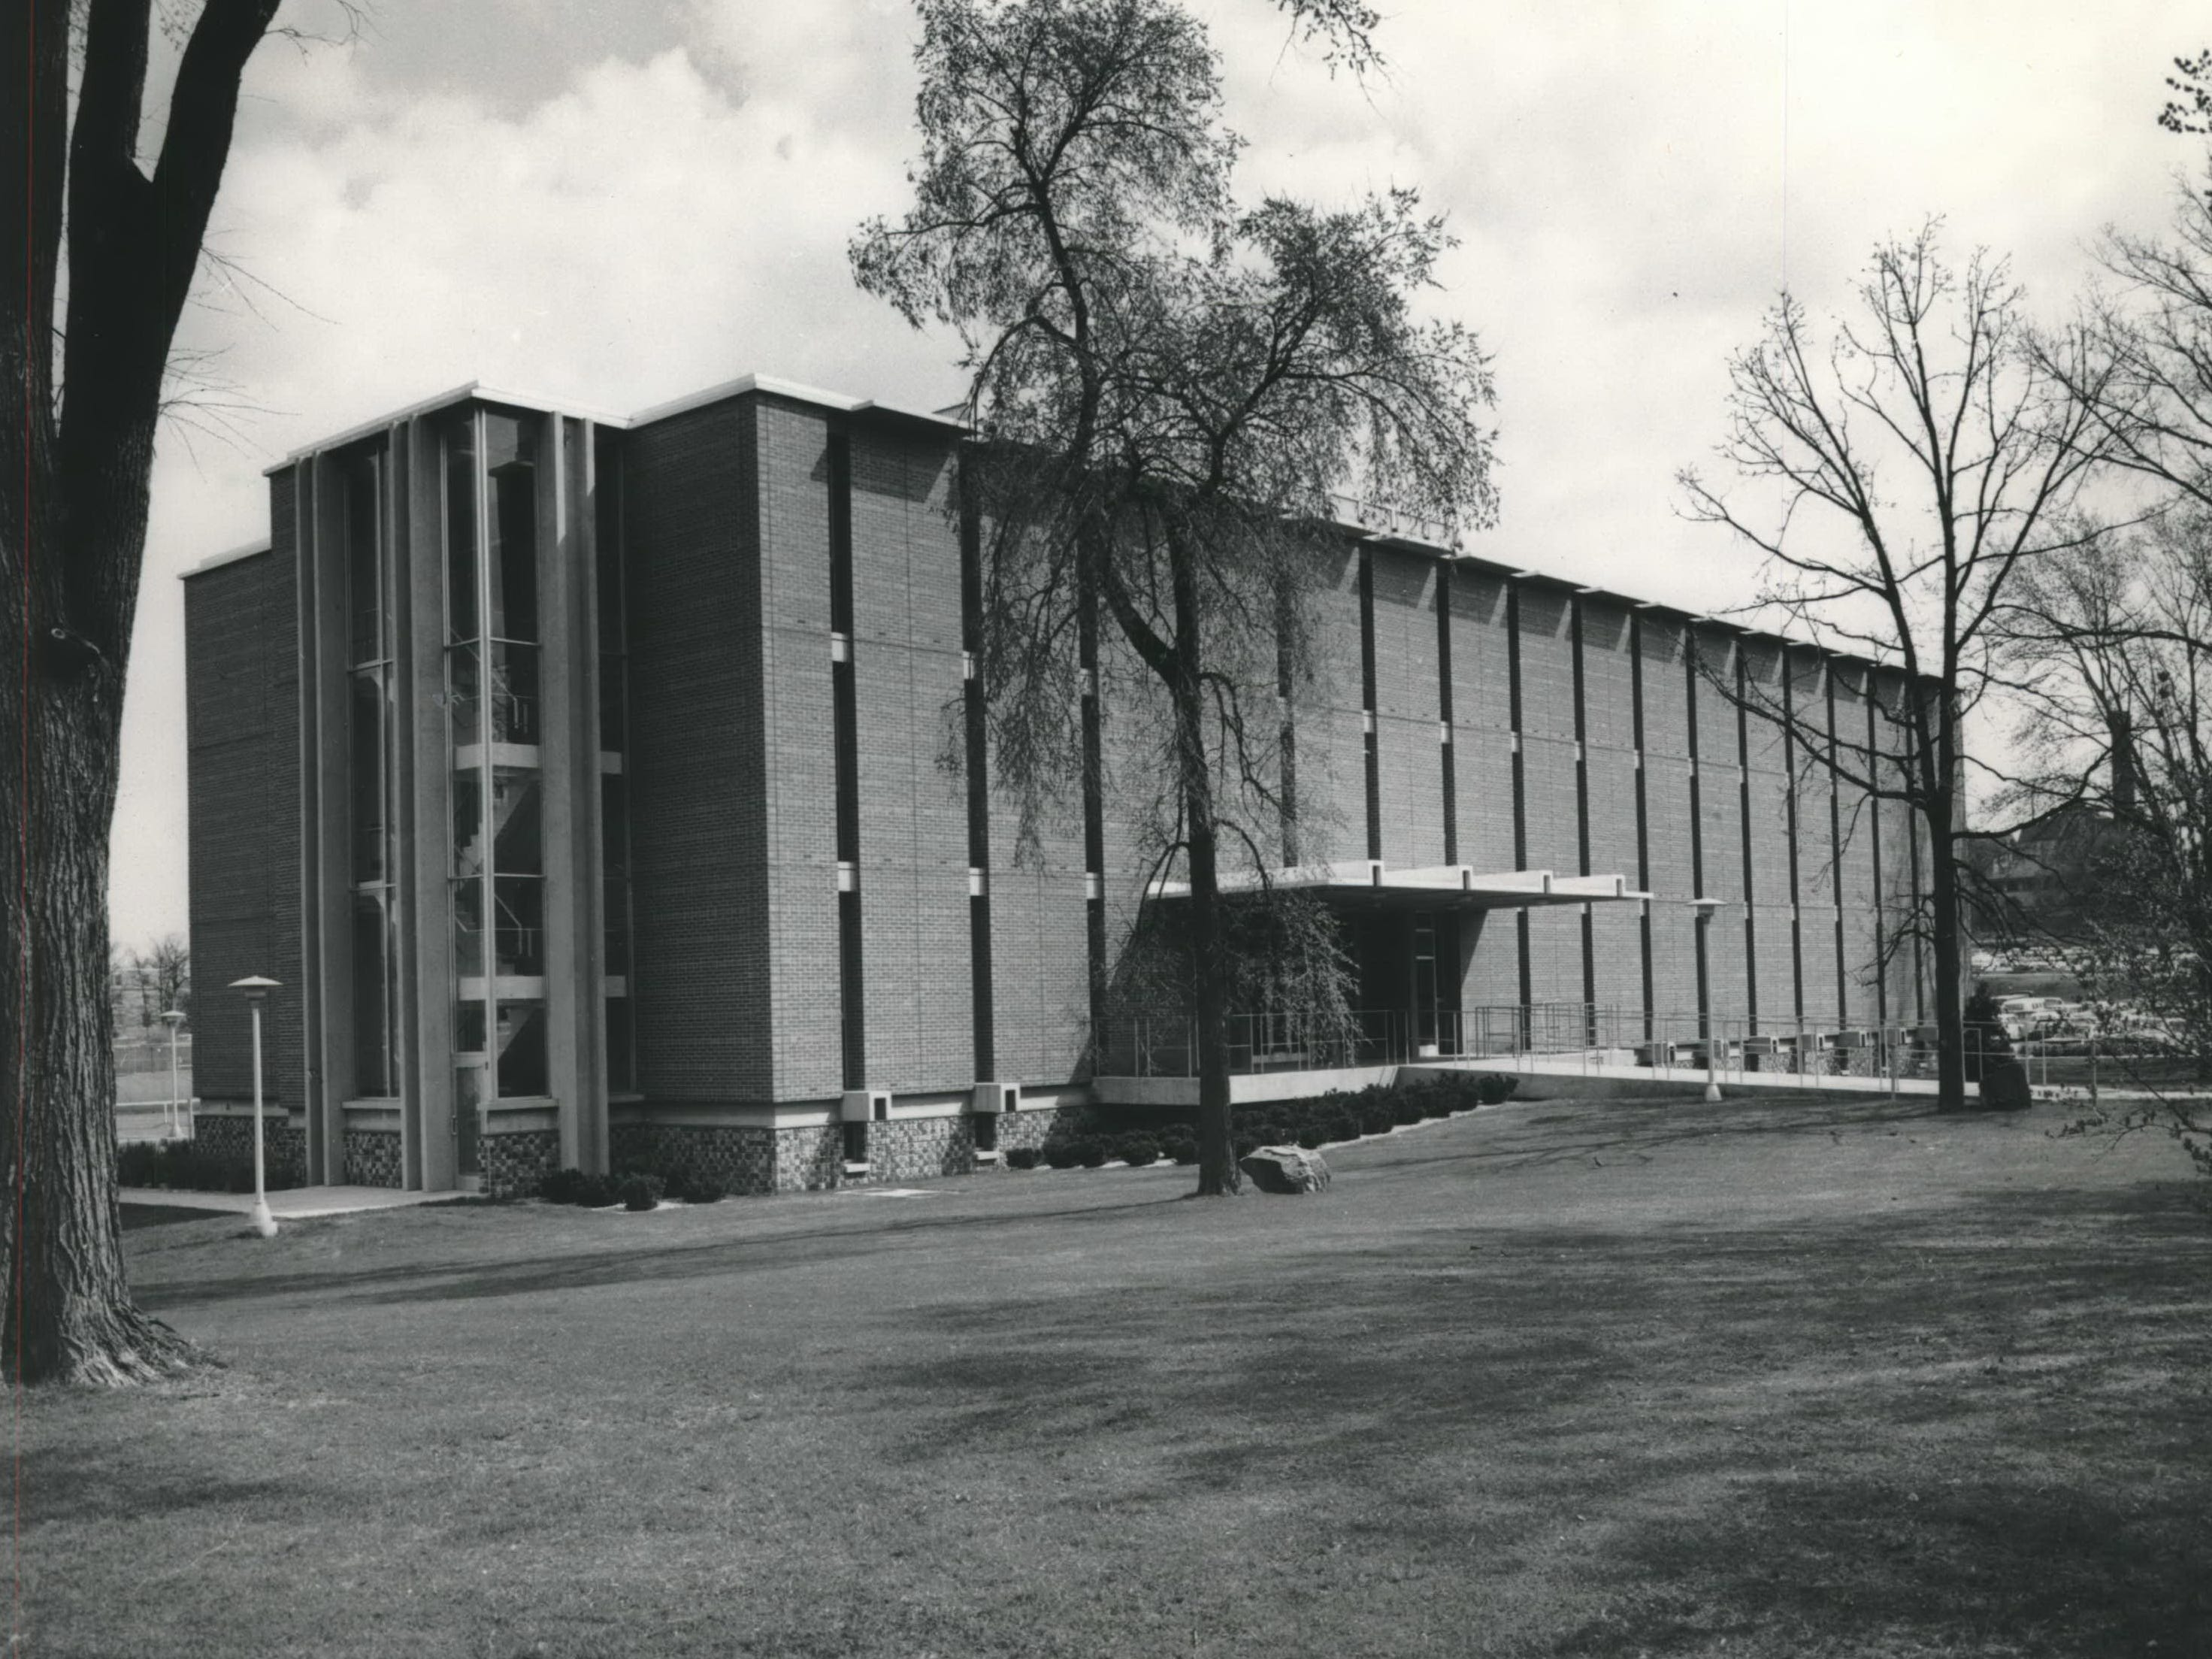 1967: Despite their opposition to the sale of colored margarine in Wisconsin, the state's agriculture industry  benefited from taxes placed on the product. Two new buildings, one for general animal science and another for animal research, were planned by the University of Wisconsin college of agriculture on the Madison campus. The college was to receive $5 million in margarine tax money.